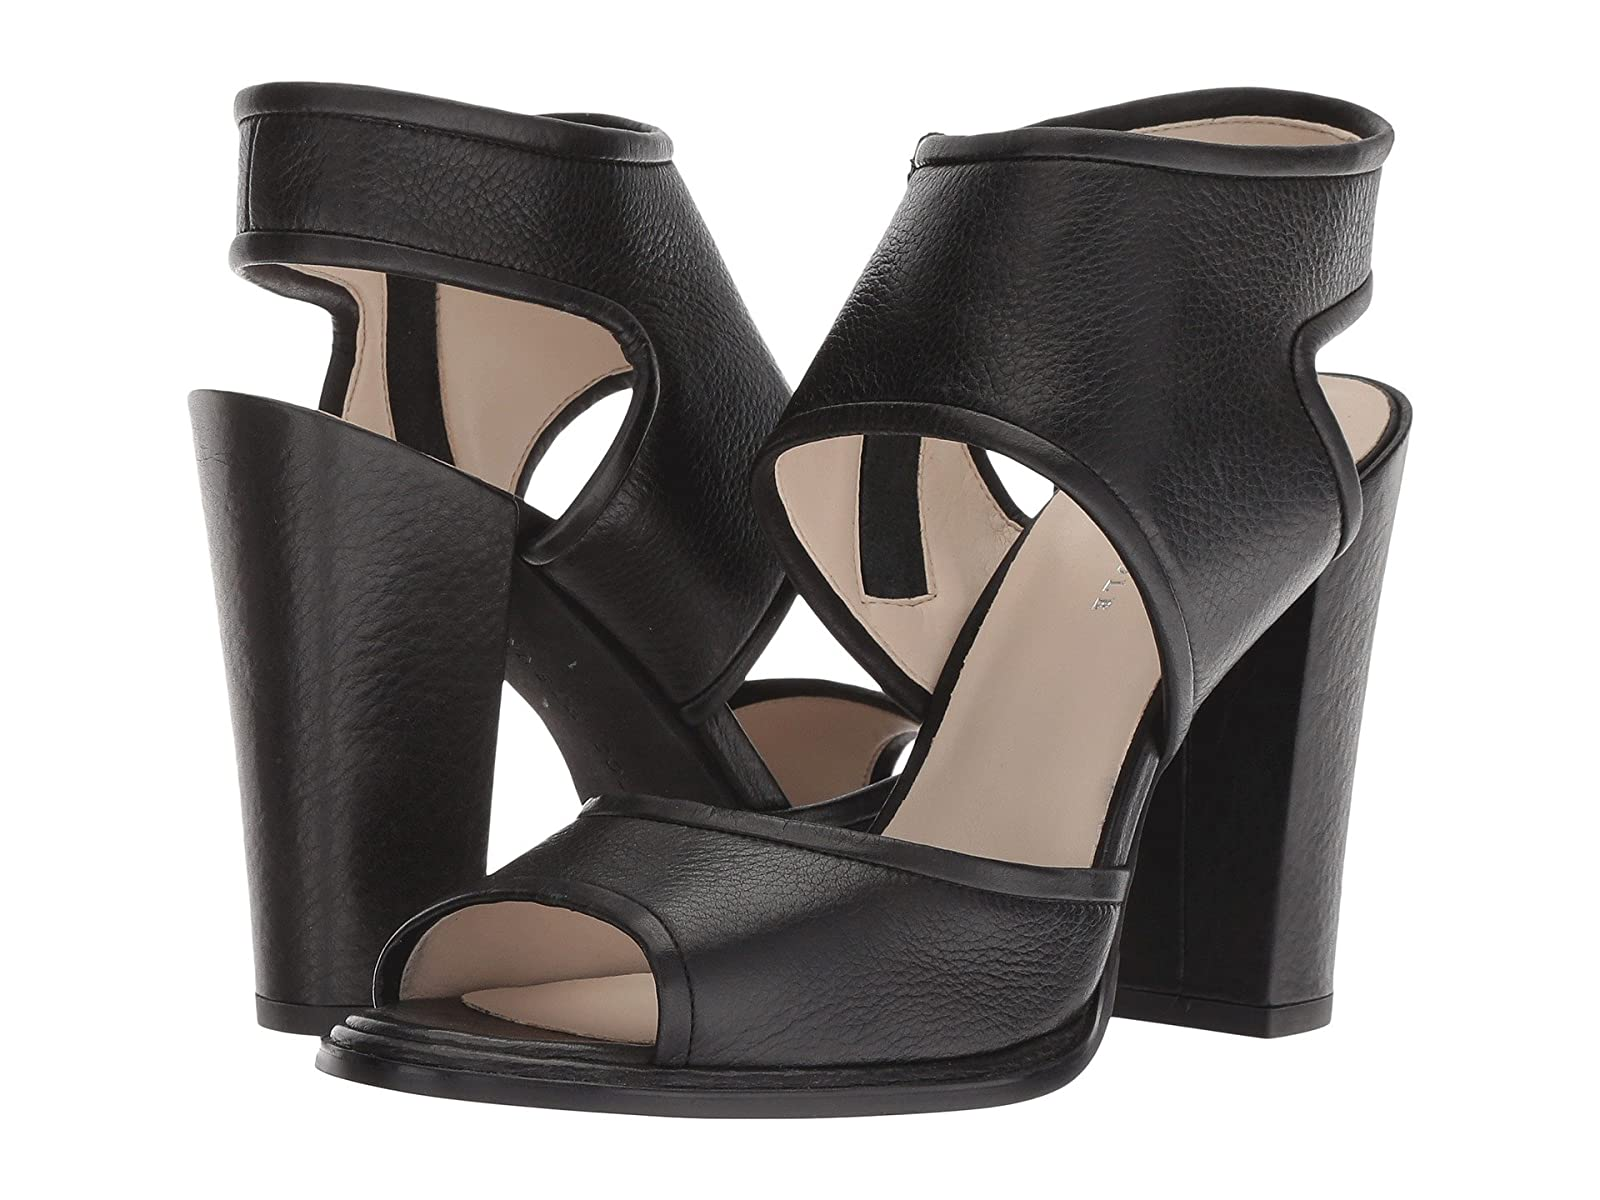 Kenneth Cole New York StacyCheap and distinctive eye-catching shoes